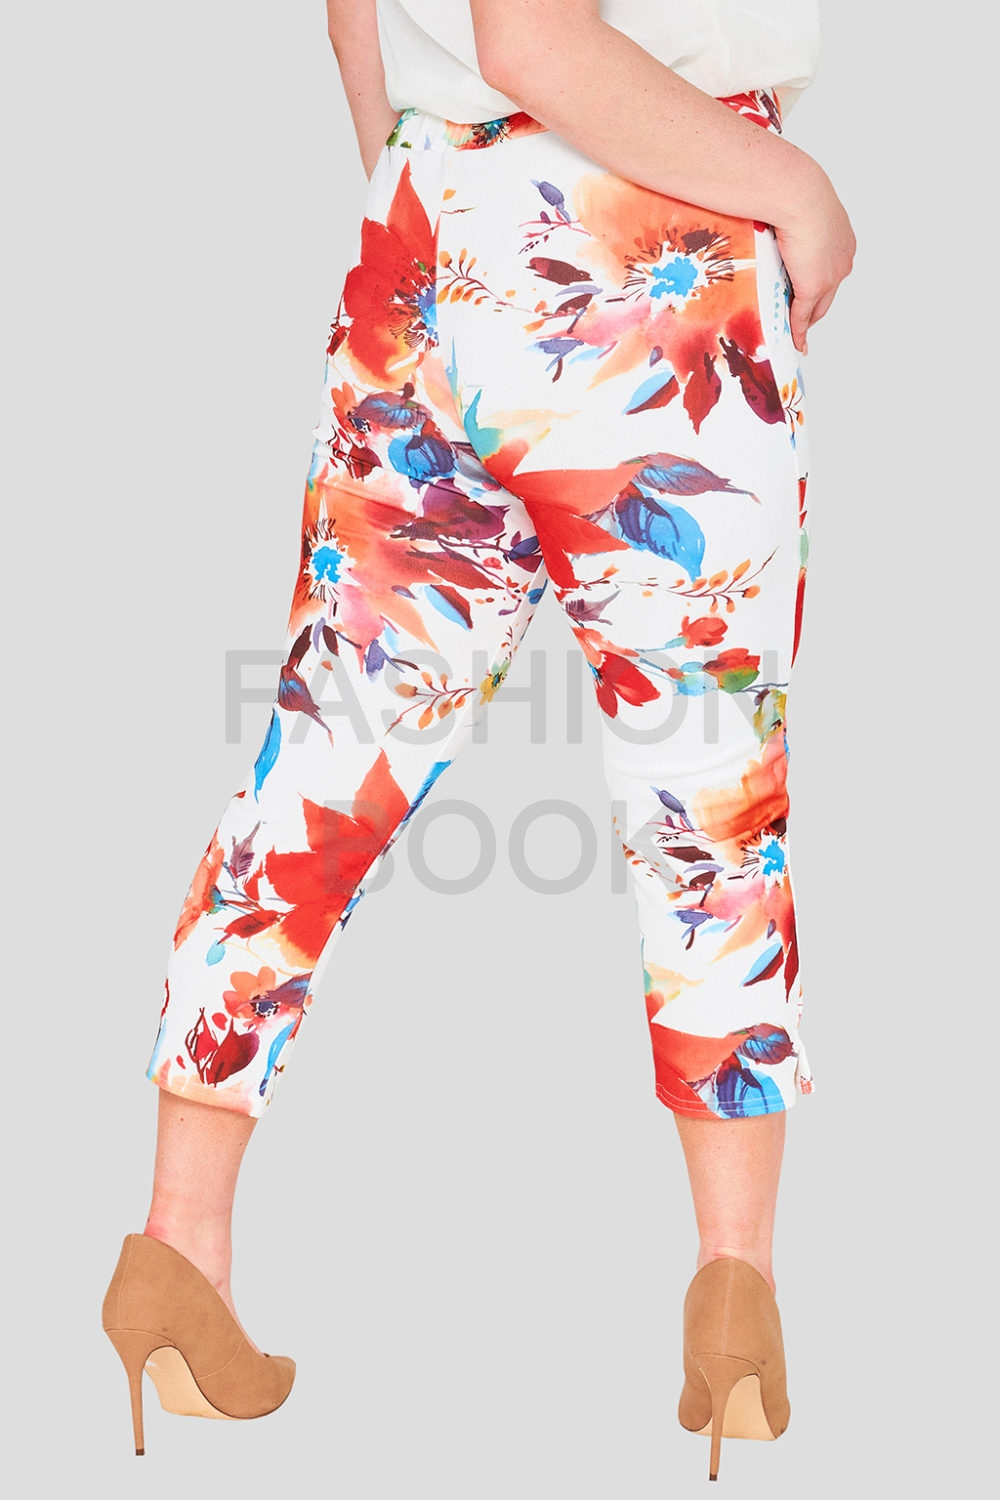 Cigarette Plus Size Wholesale Pants